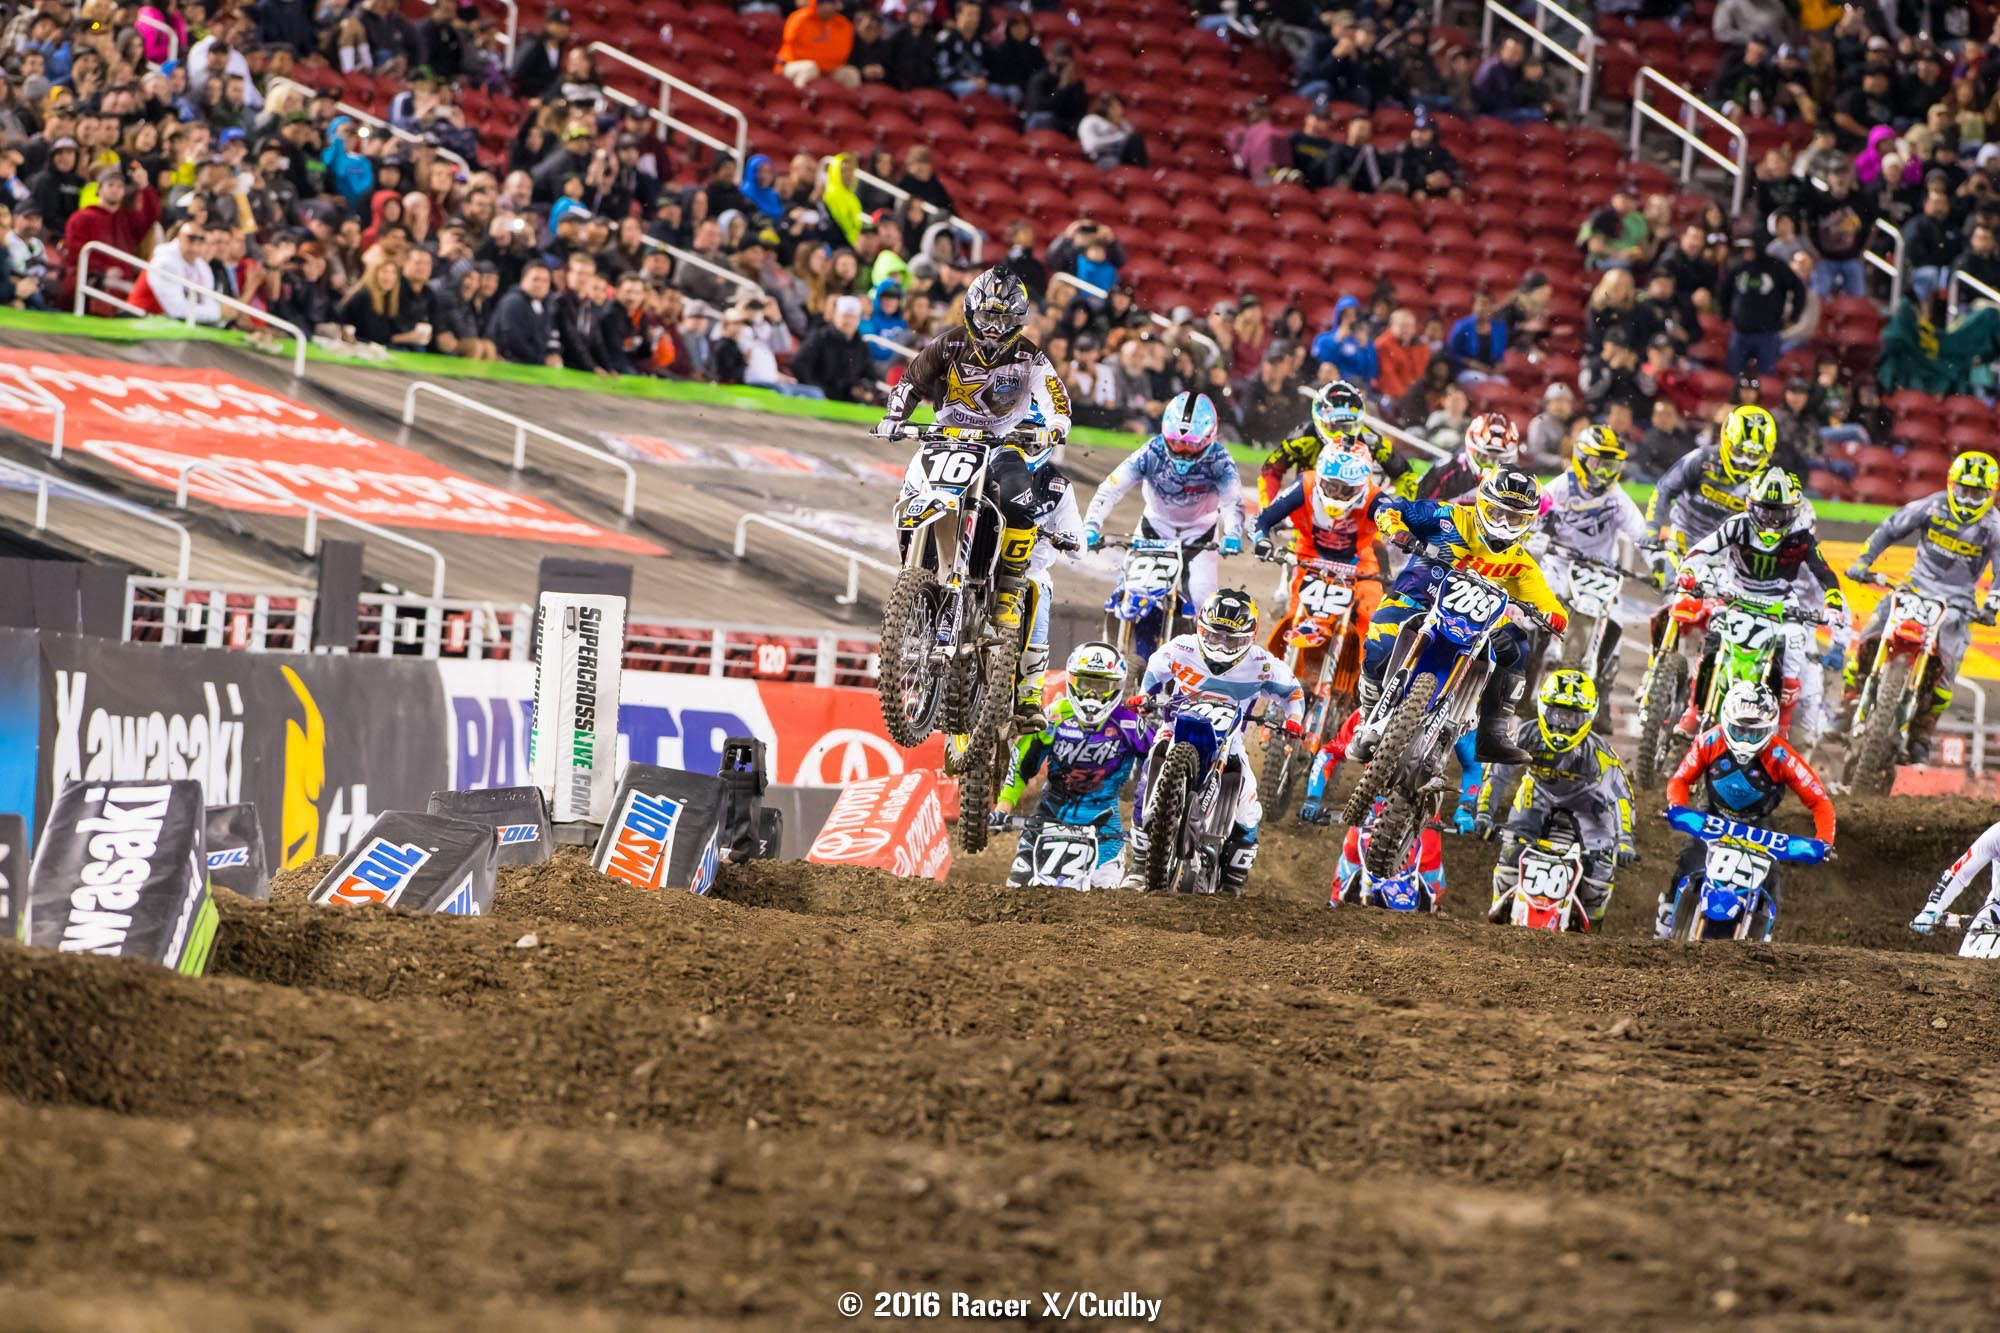 Zach Osborne won his heat, holeshot the main, and led eleven laps in the main.